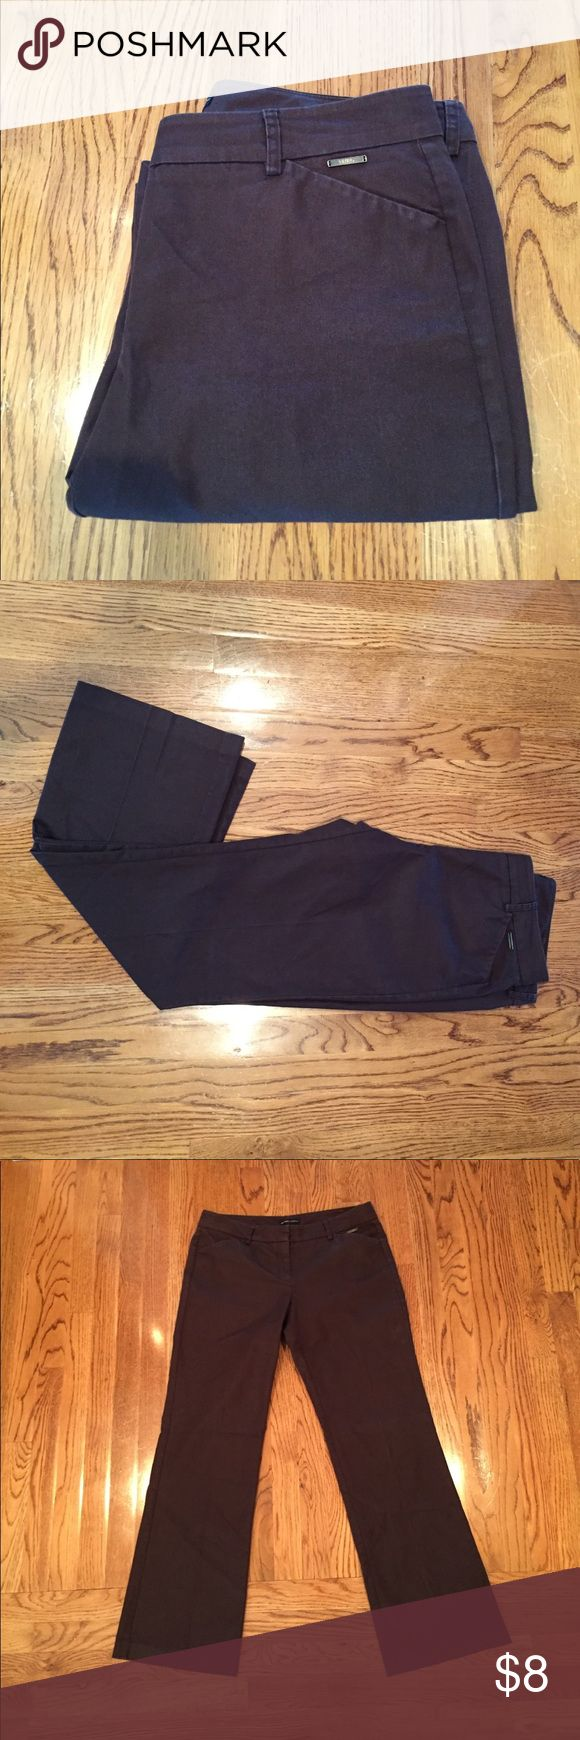 Brown slacks Brown slacks. In great condition. Flare style legs. Zipper and buttons all in working condition. New York & Company Pants Trousers